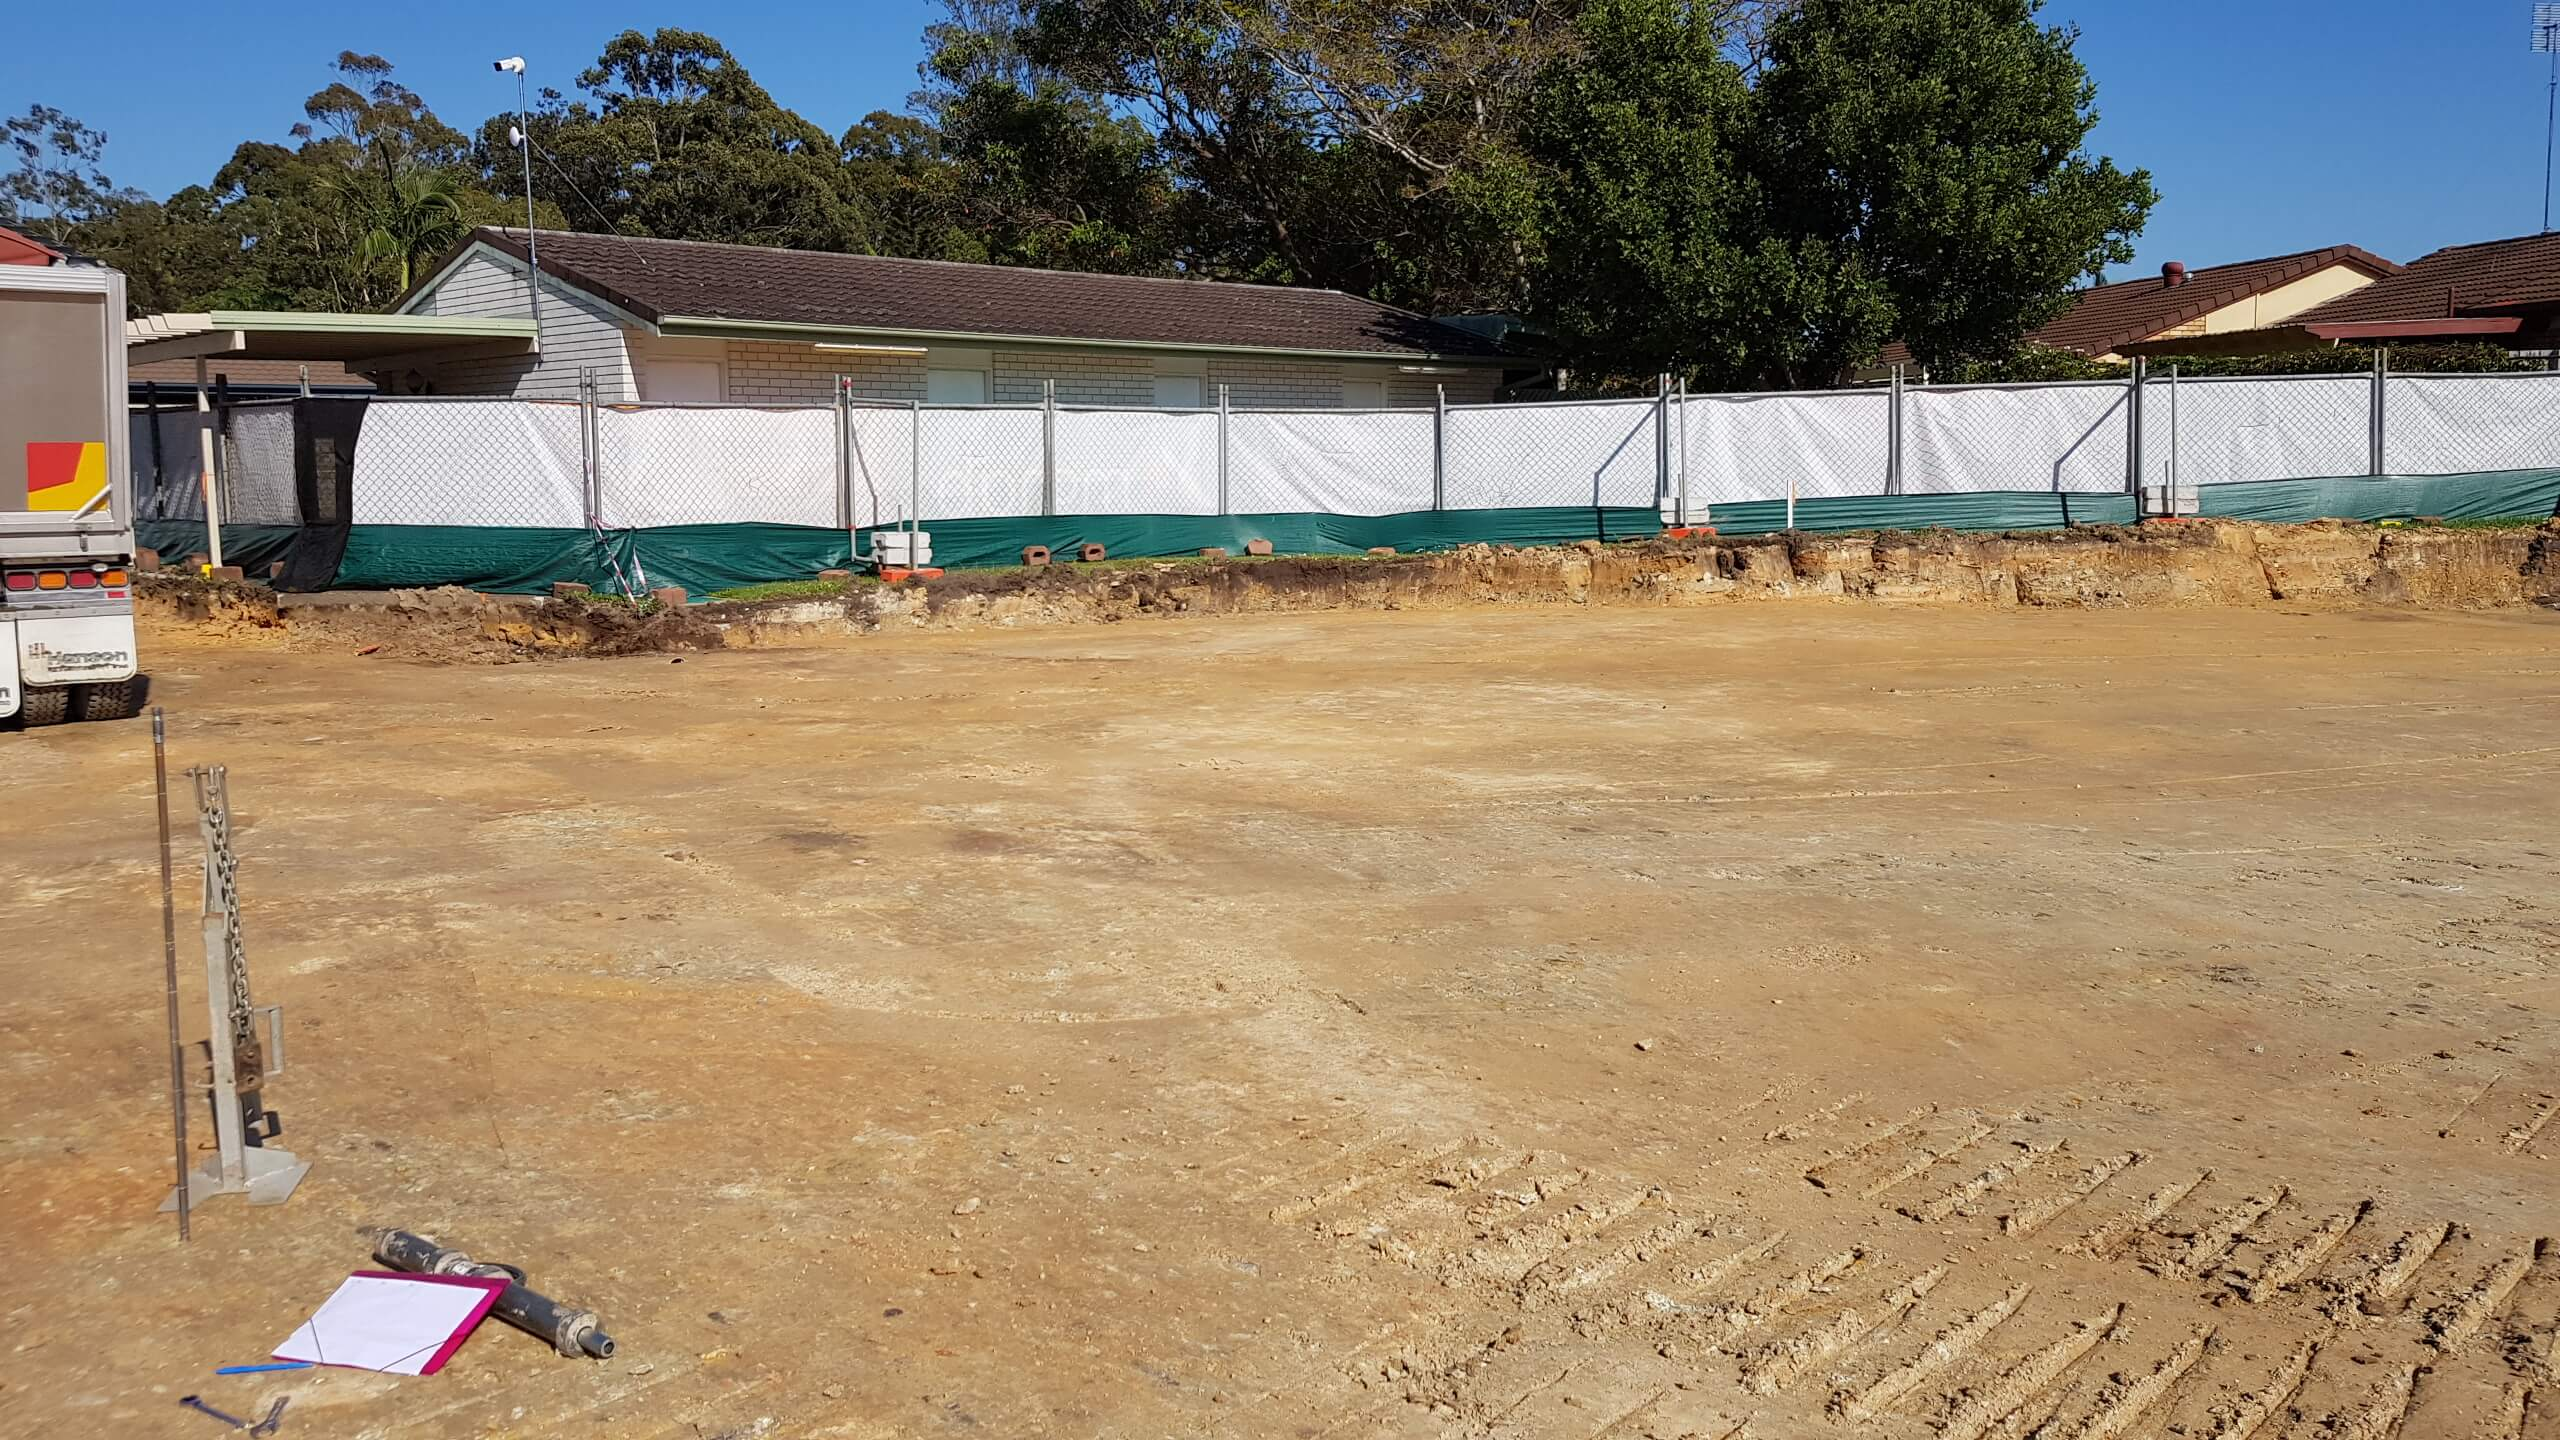 Cleared and graded site